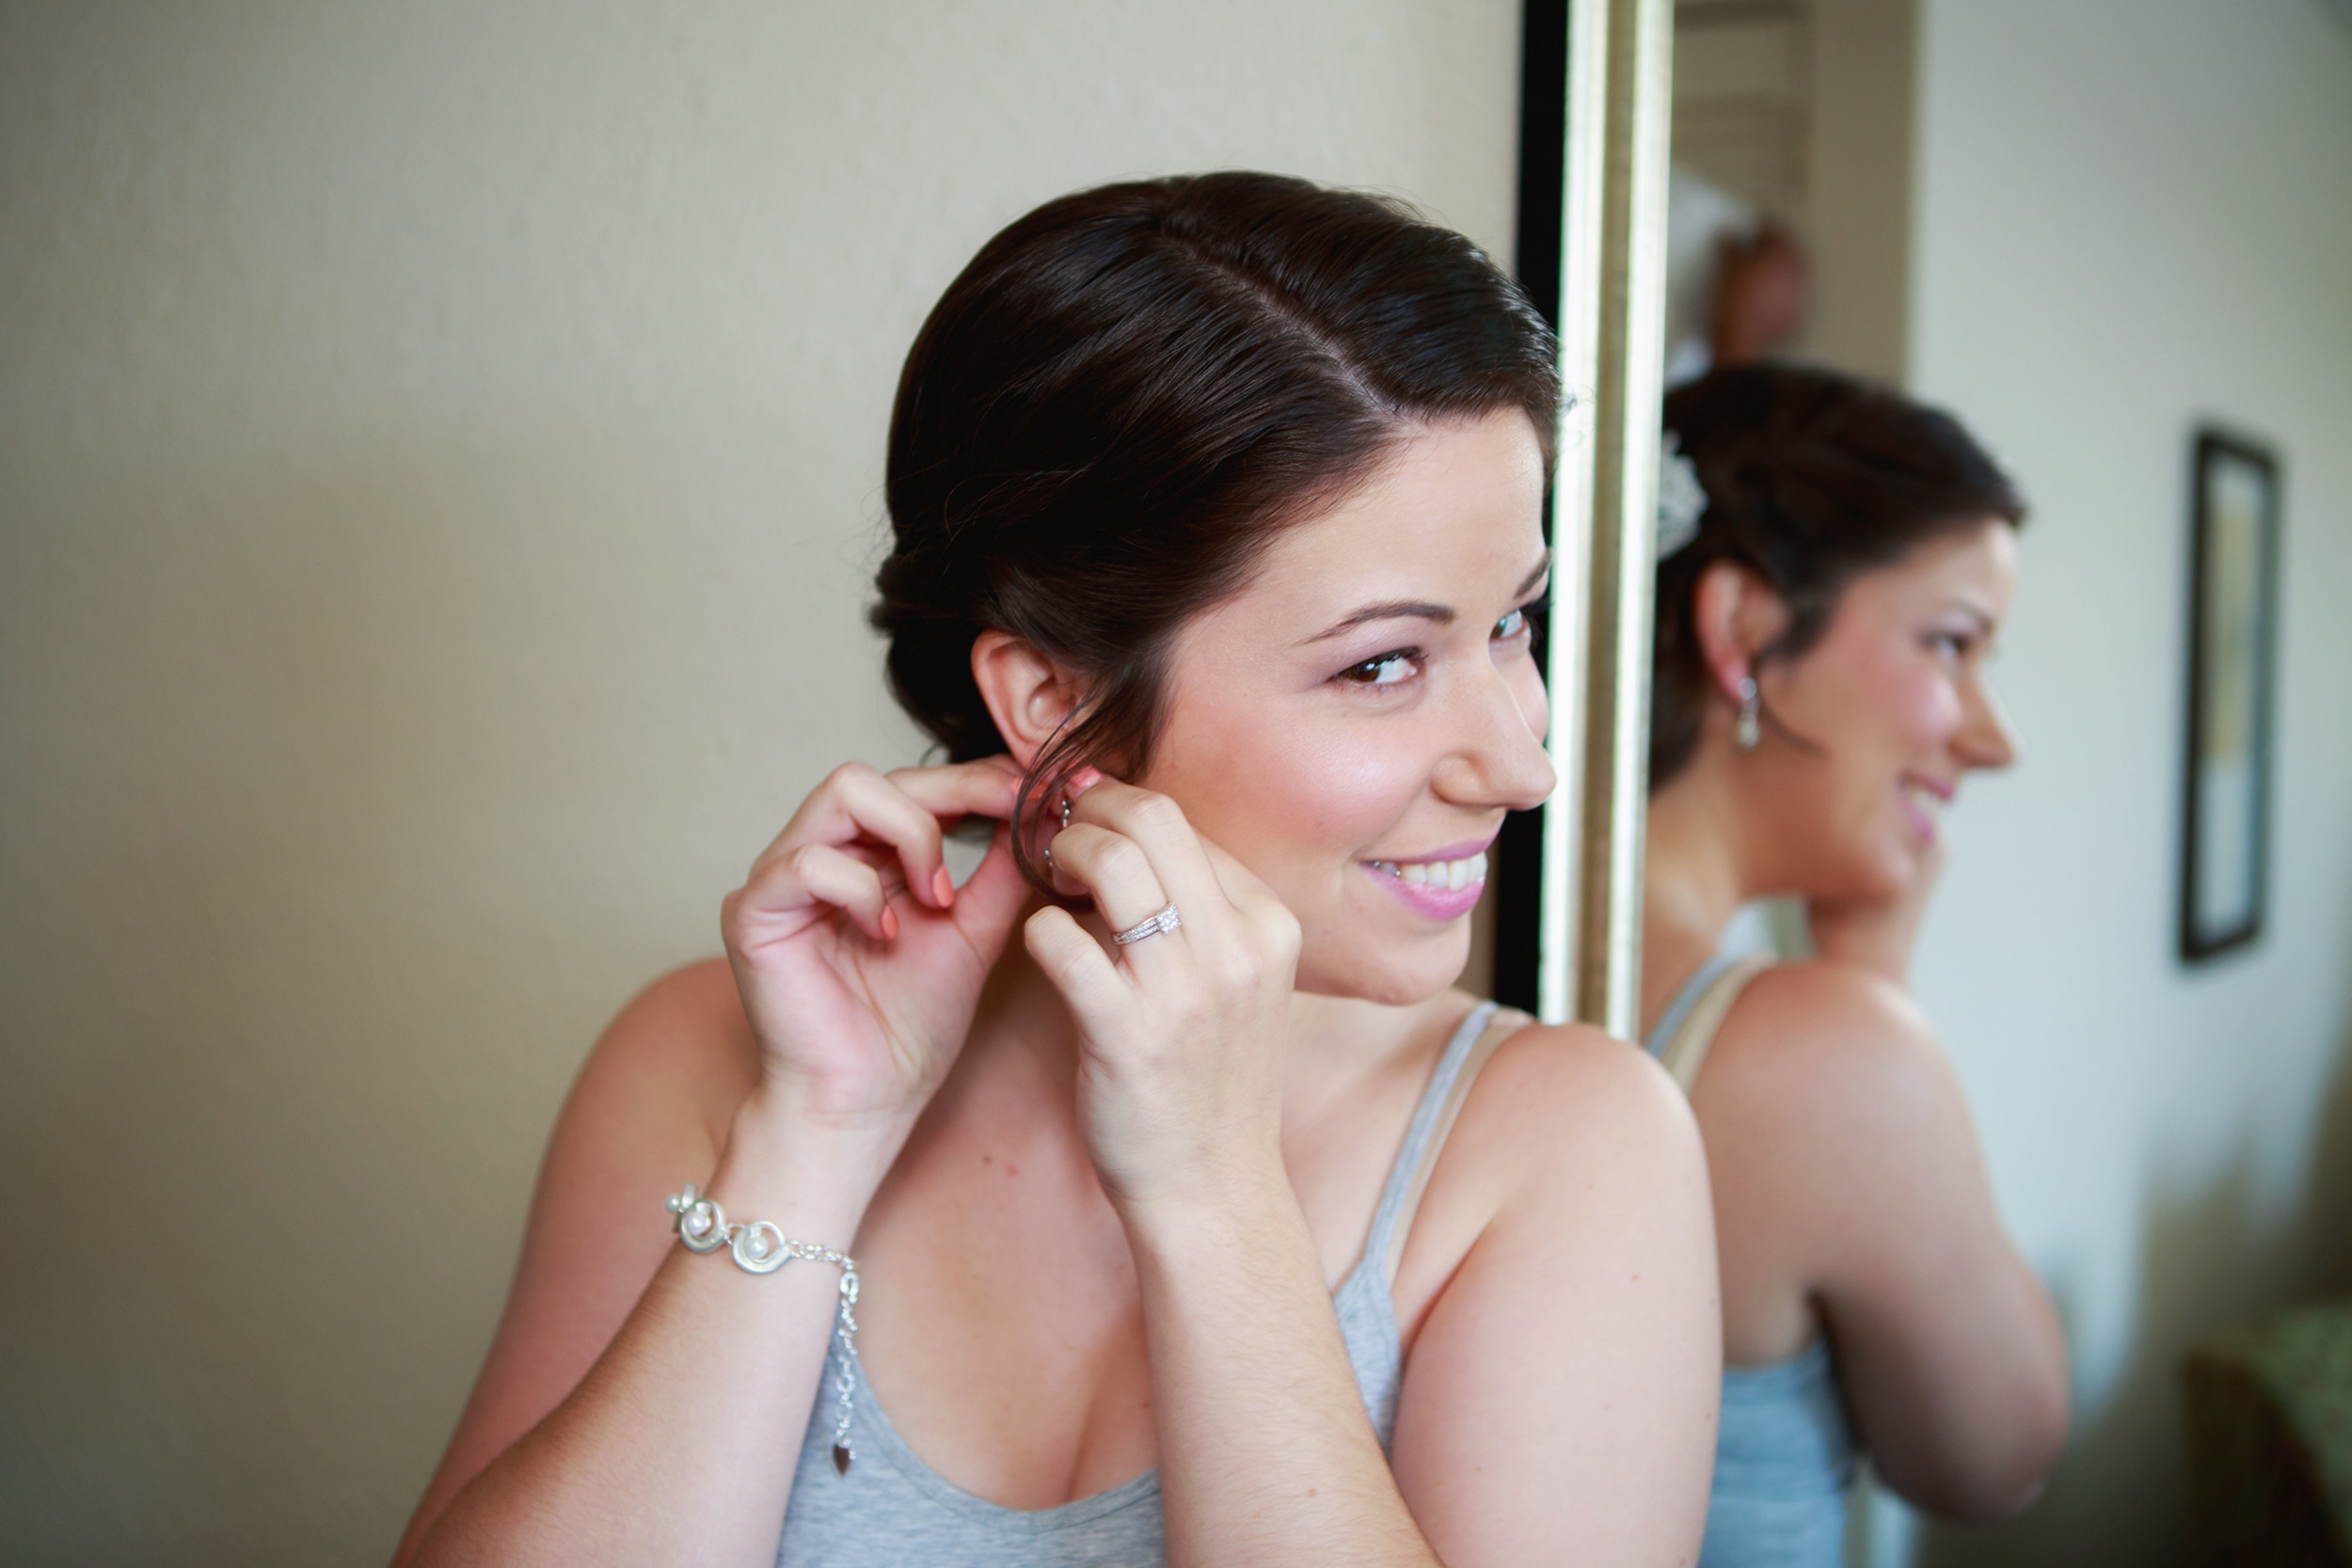 Wilmington_NC_Photographer_128_South_Wedding_Tiffany_Abruzzo_Photography_Girls_38.jpg